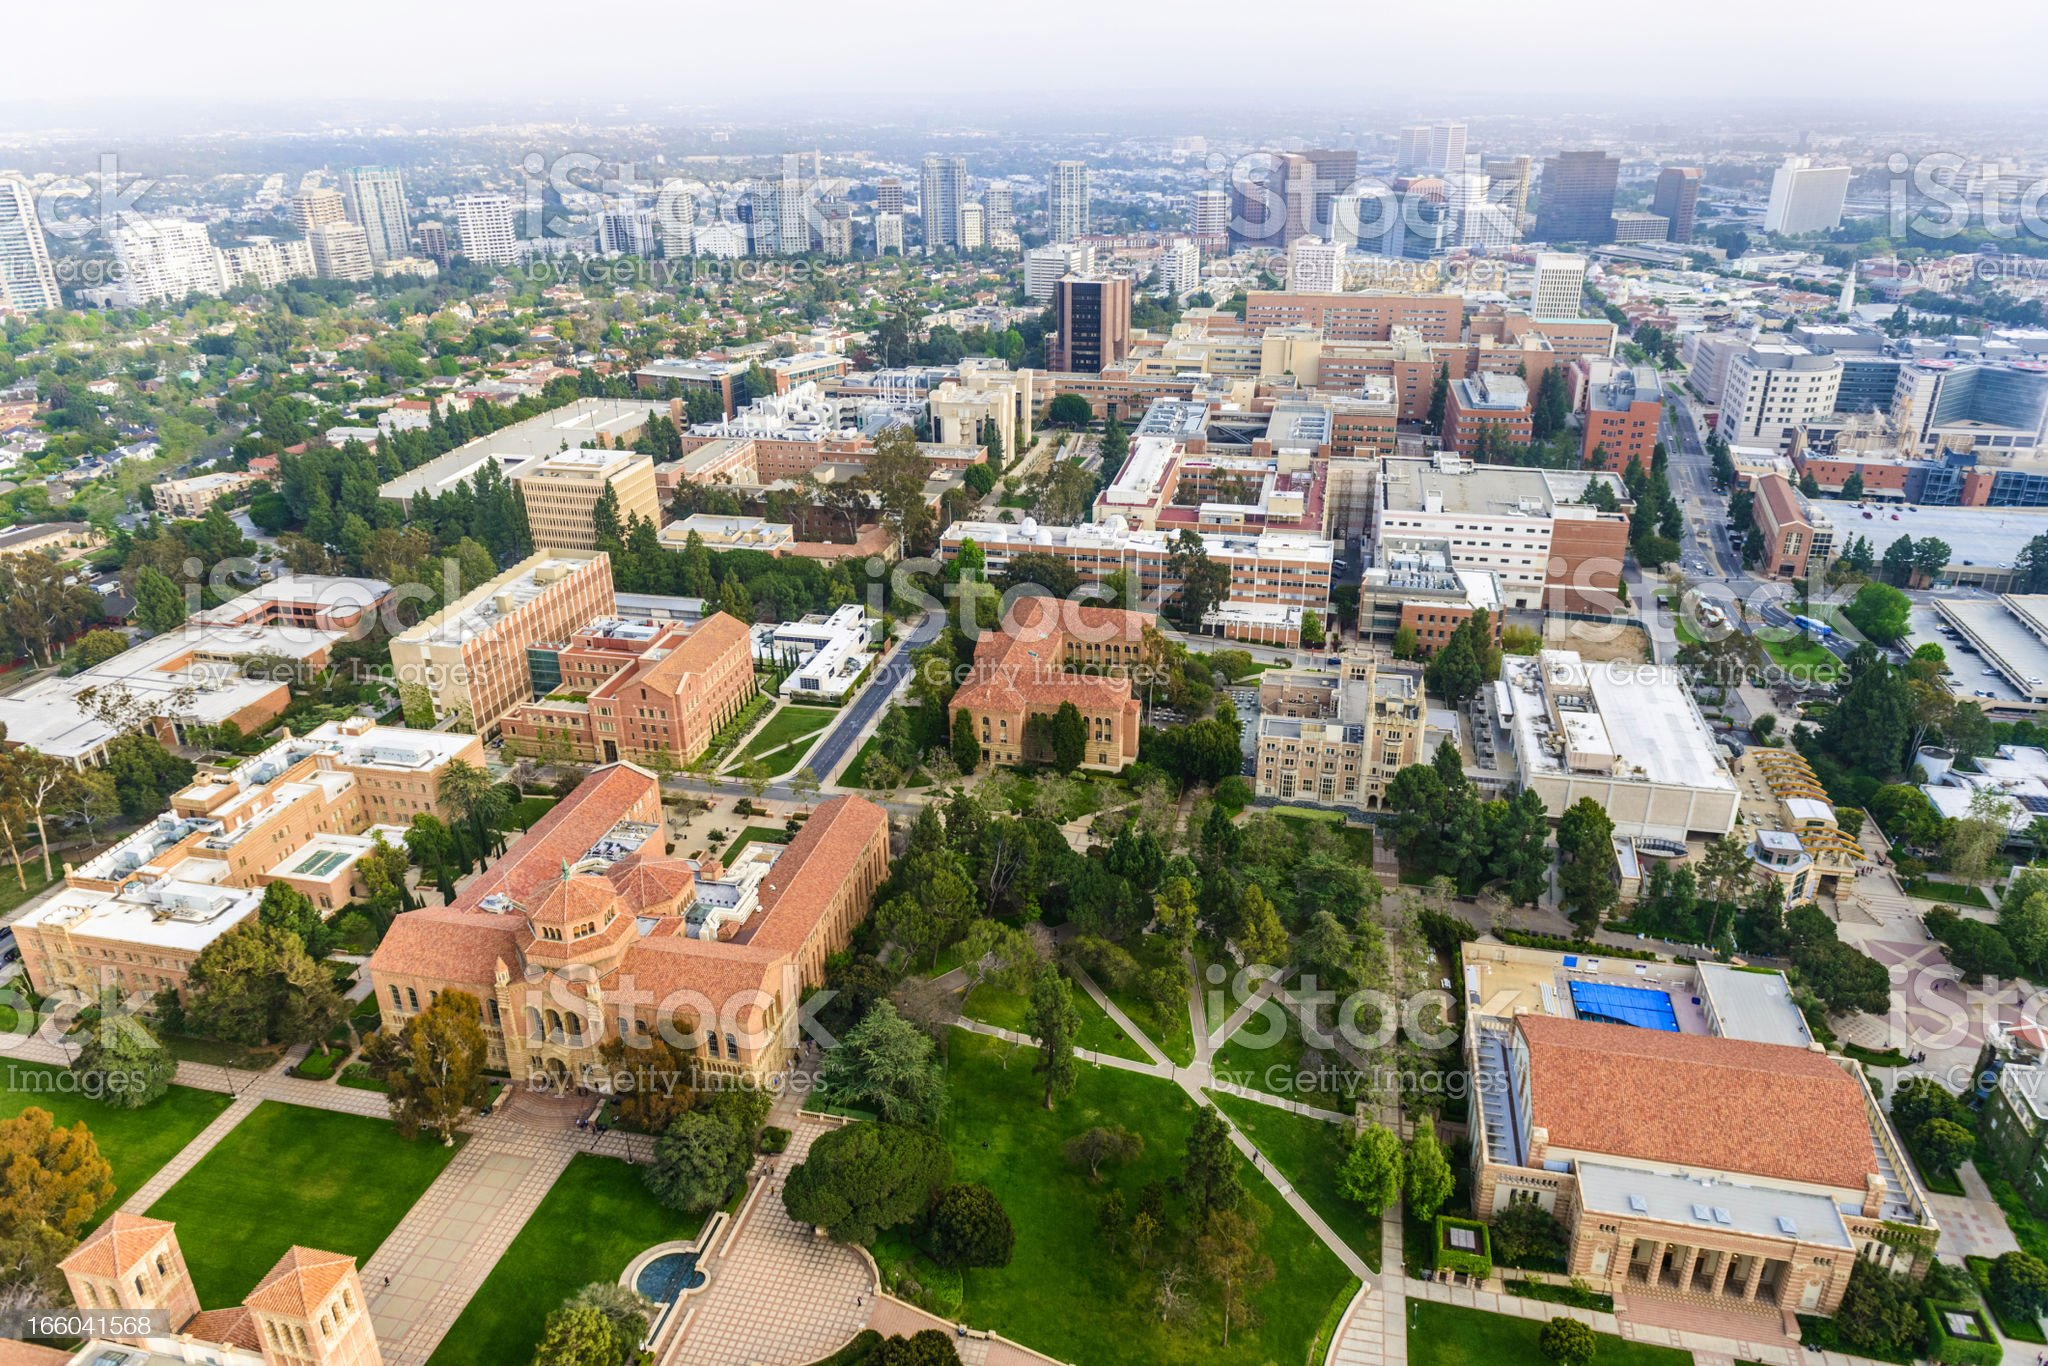 UCLA campus in Los Angeles, California - aerial view royalty-free stock photo